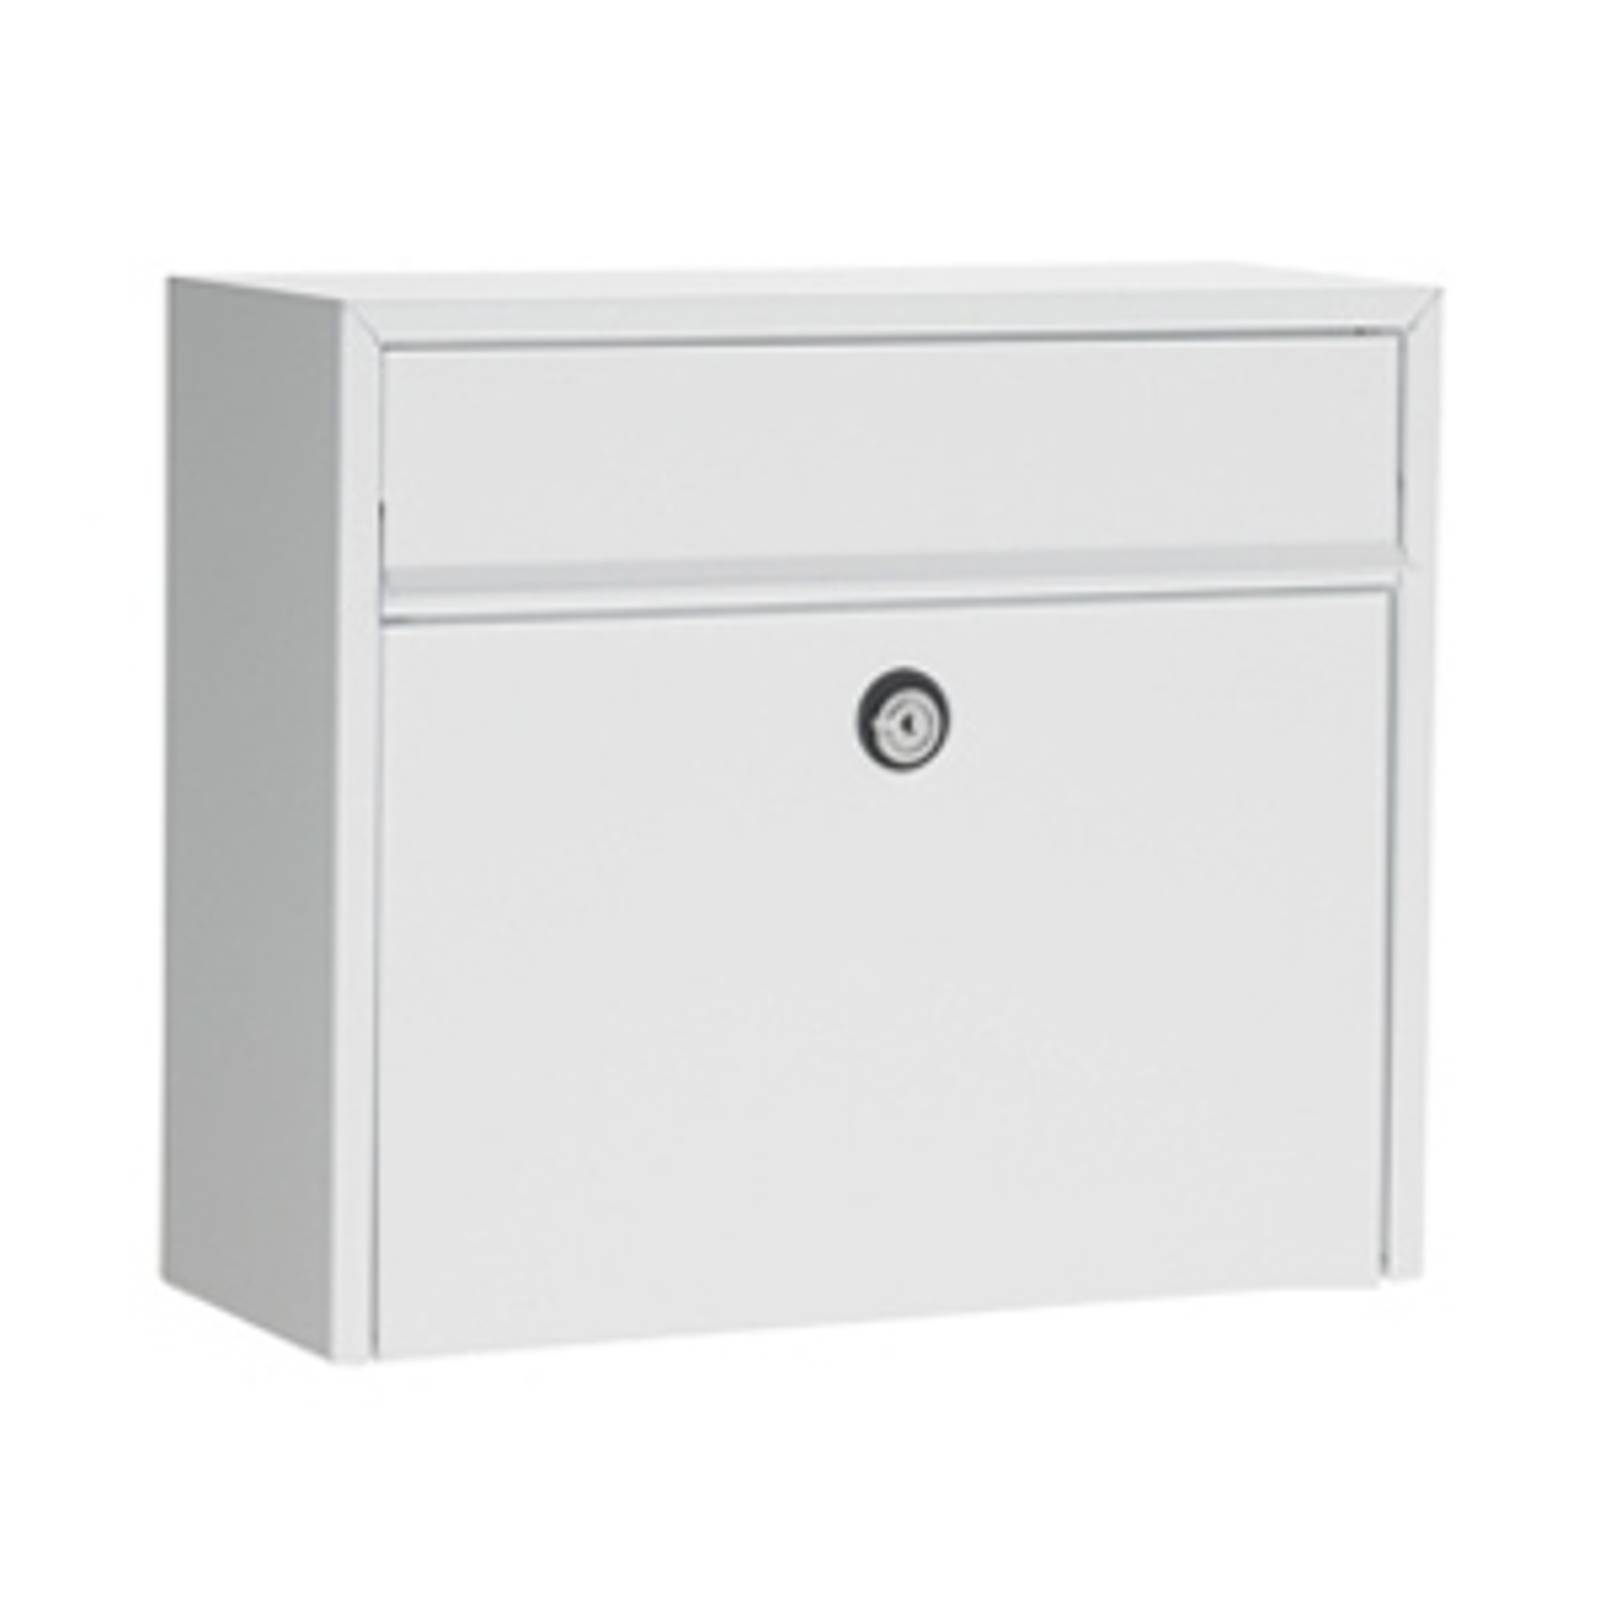 Simple letterbox LT150, white, Euro from Juliana